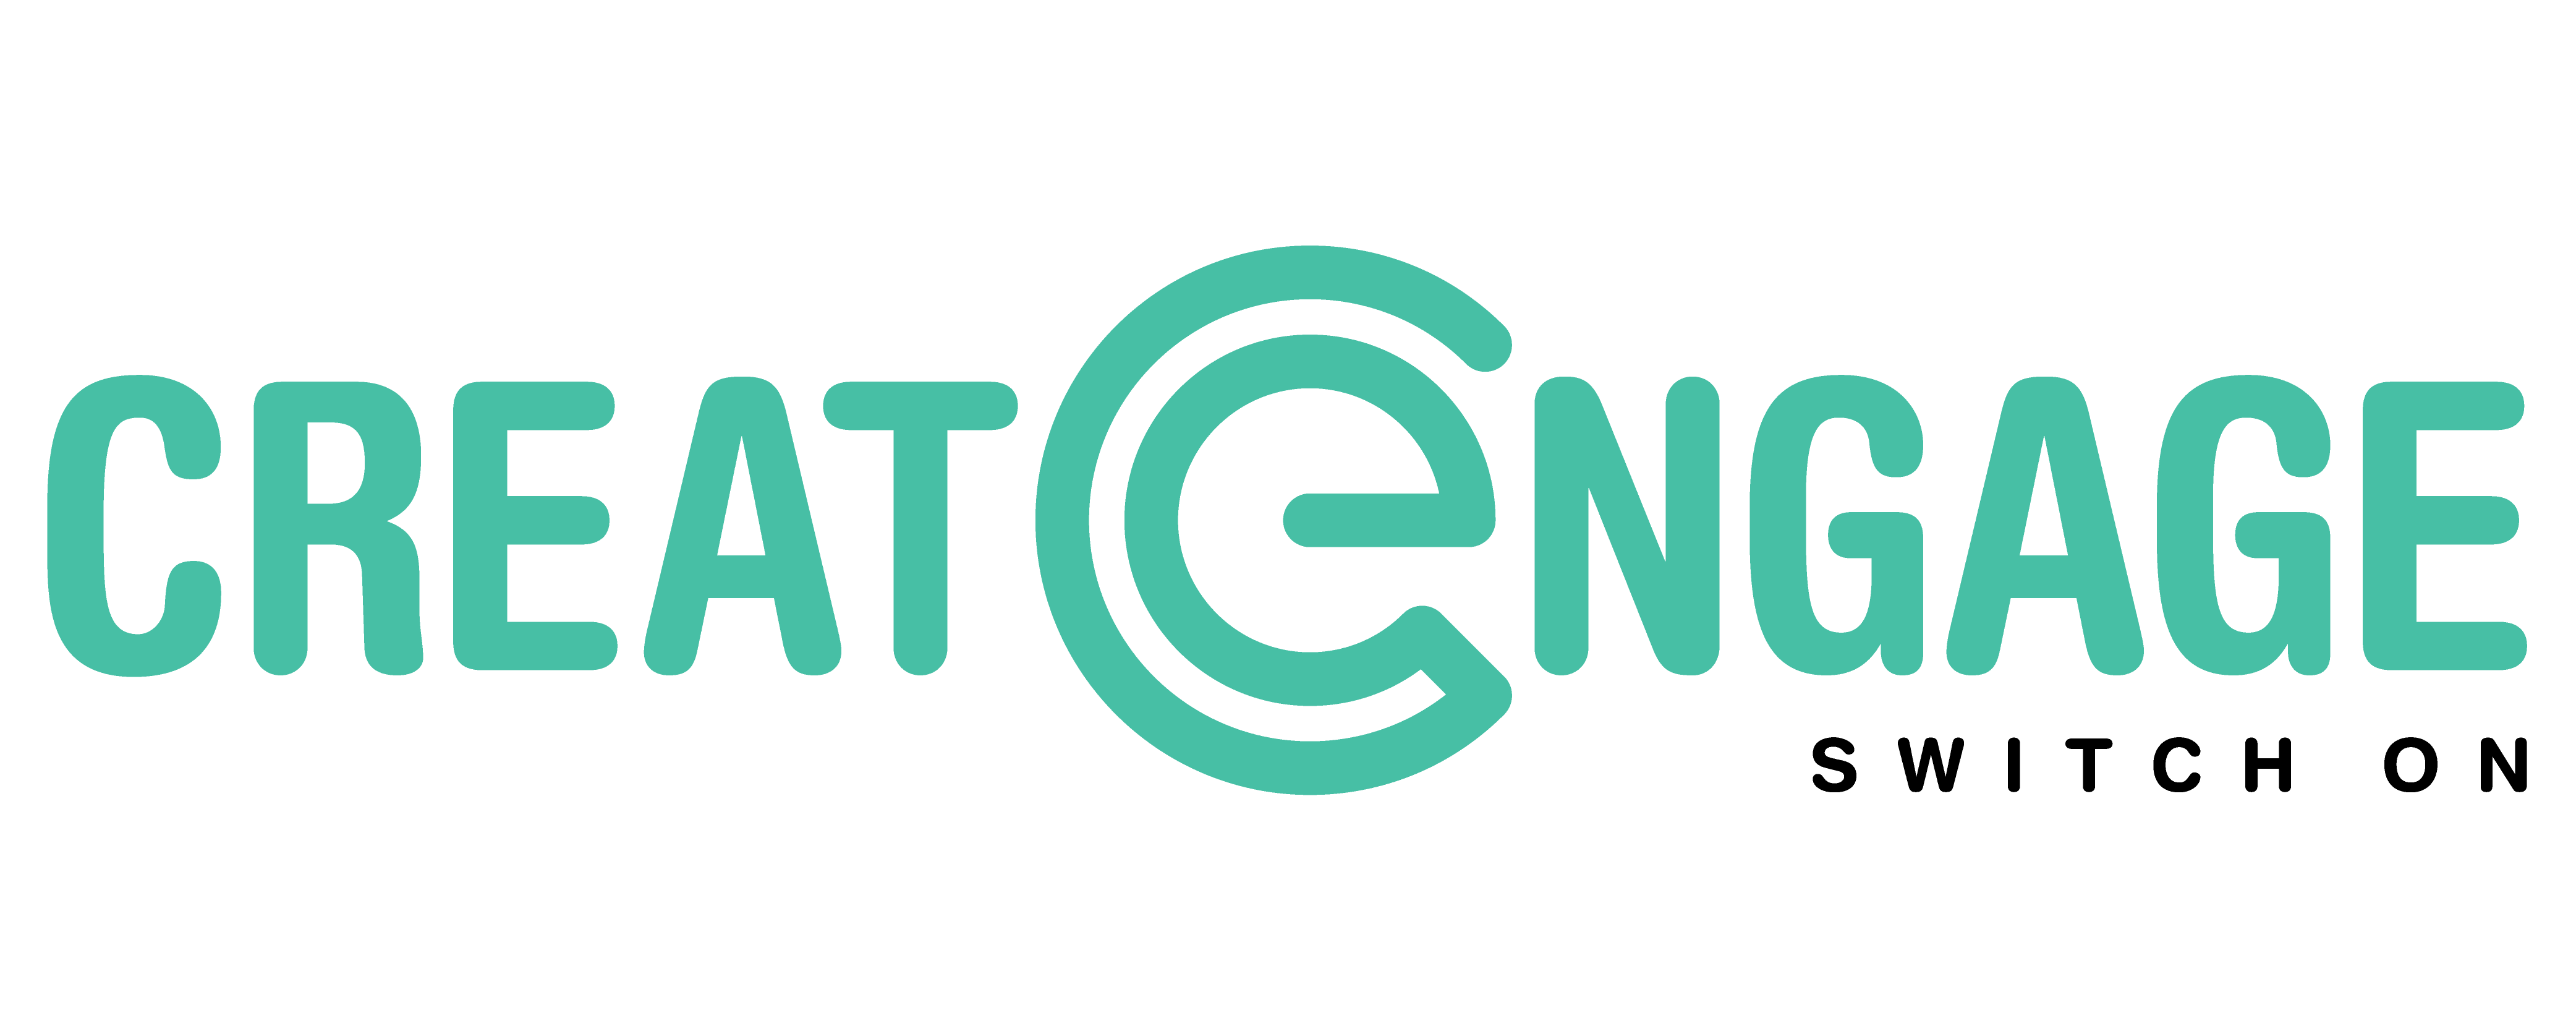 Create Engage Logo